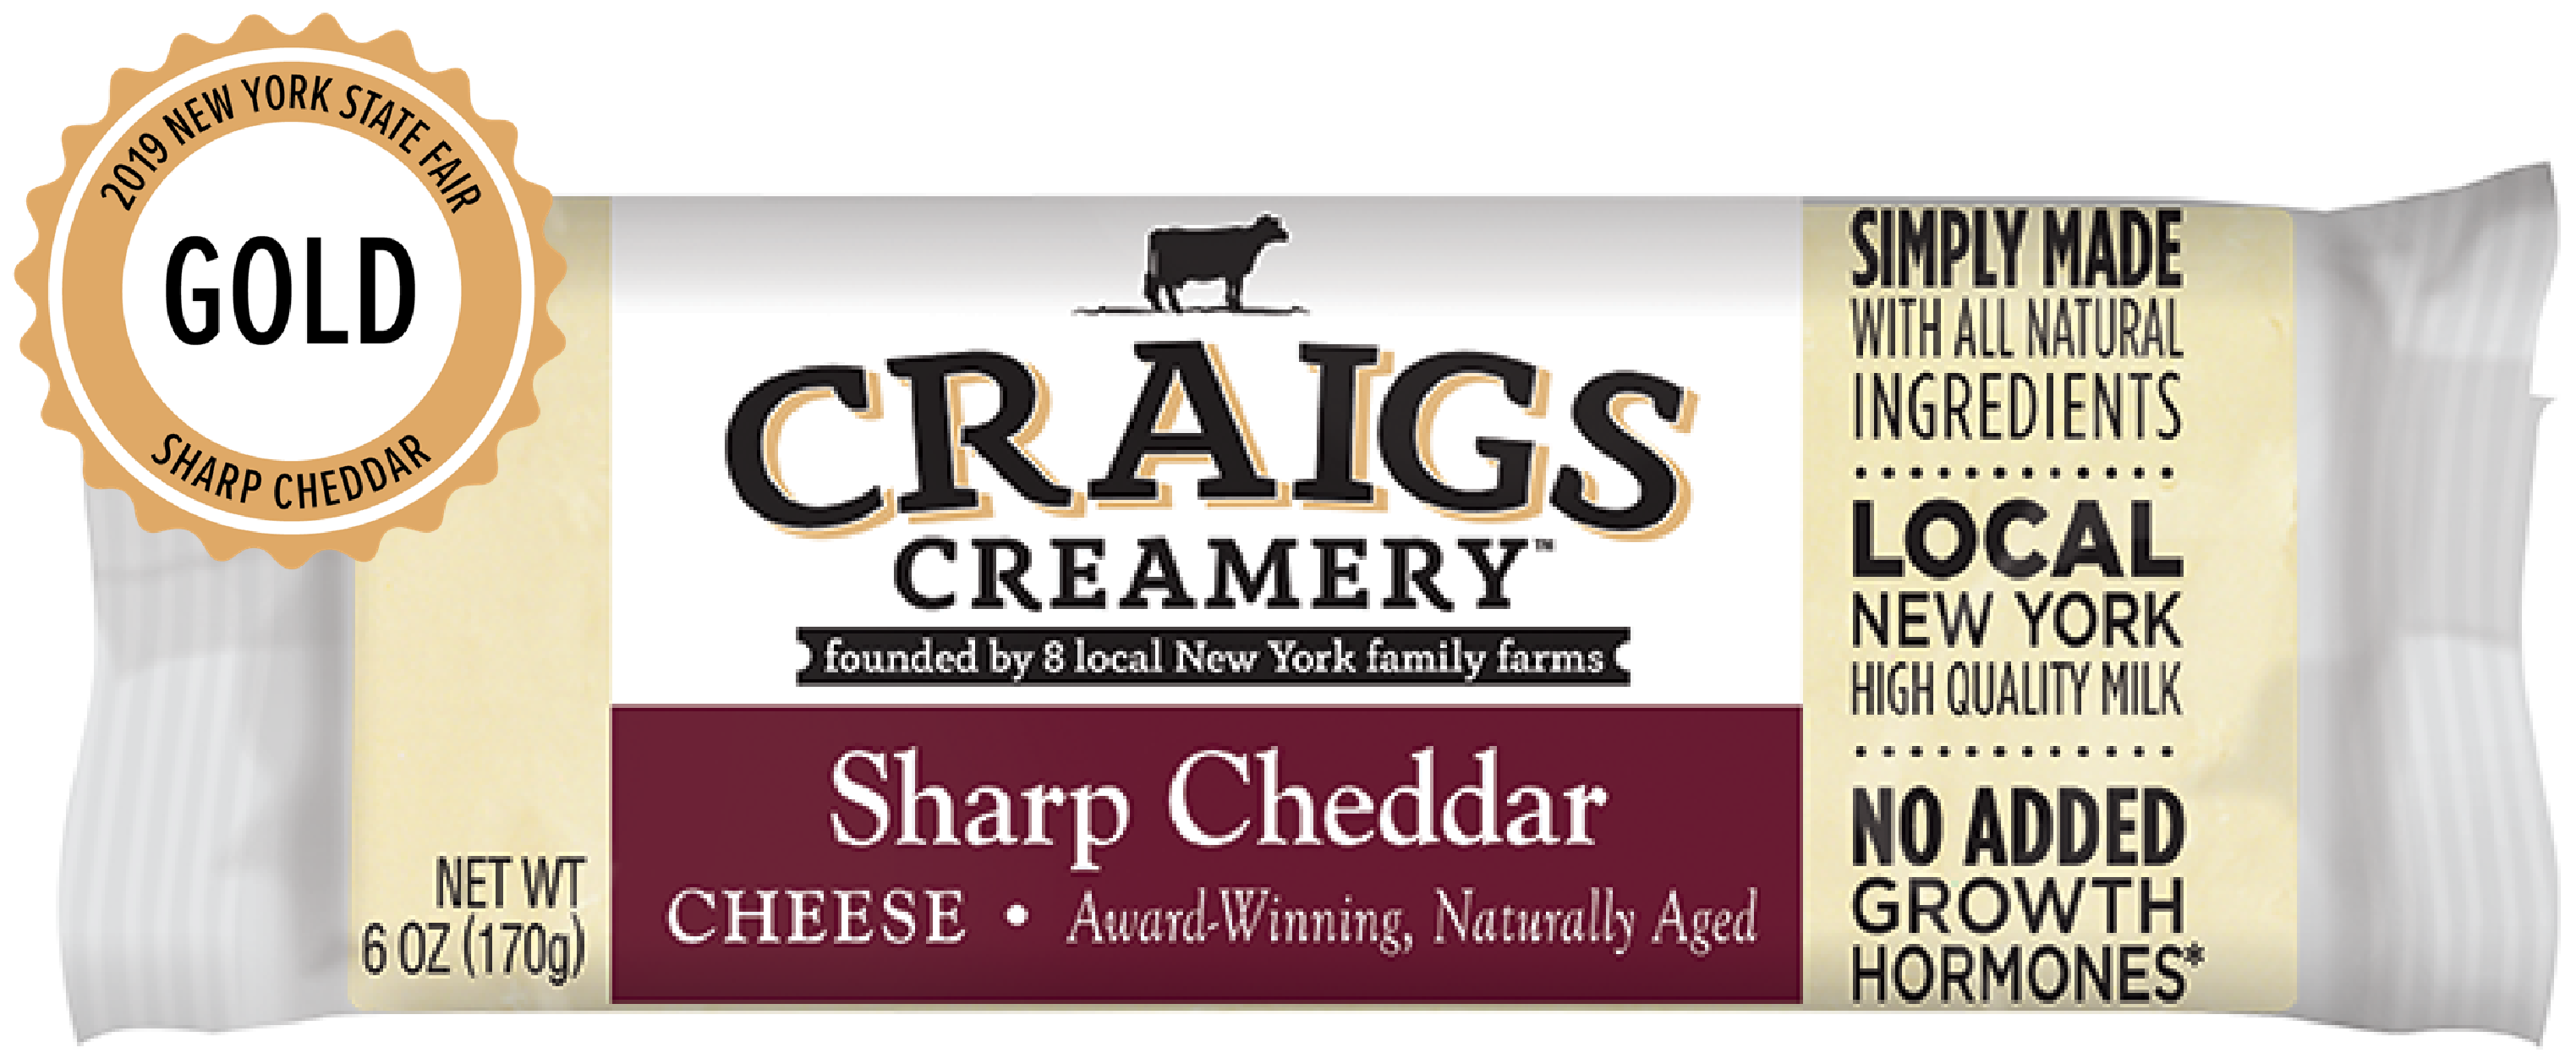 Aerial shot of cows grazing at one of Craigs Creamery local New York family farms overlayed with packaging for our farm-fresh Sharp Cheddar Chunk